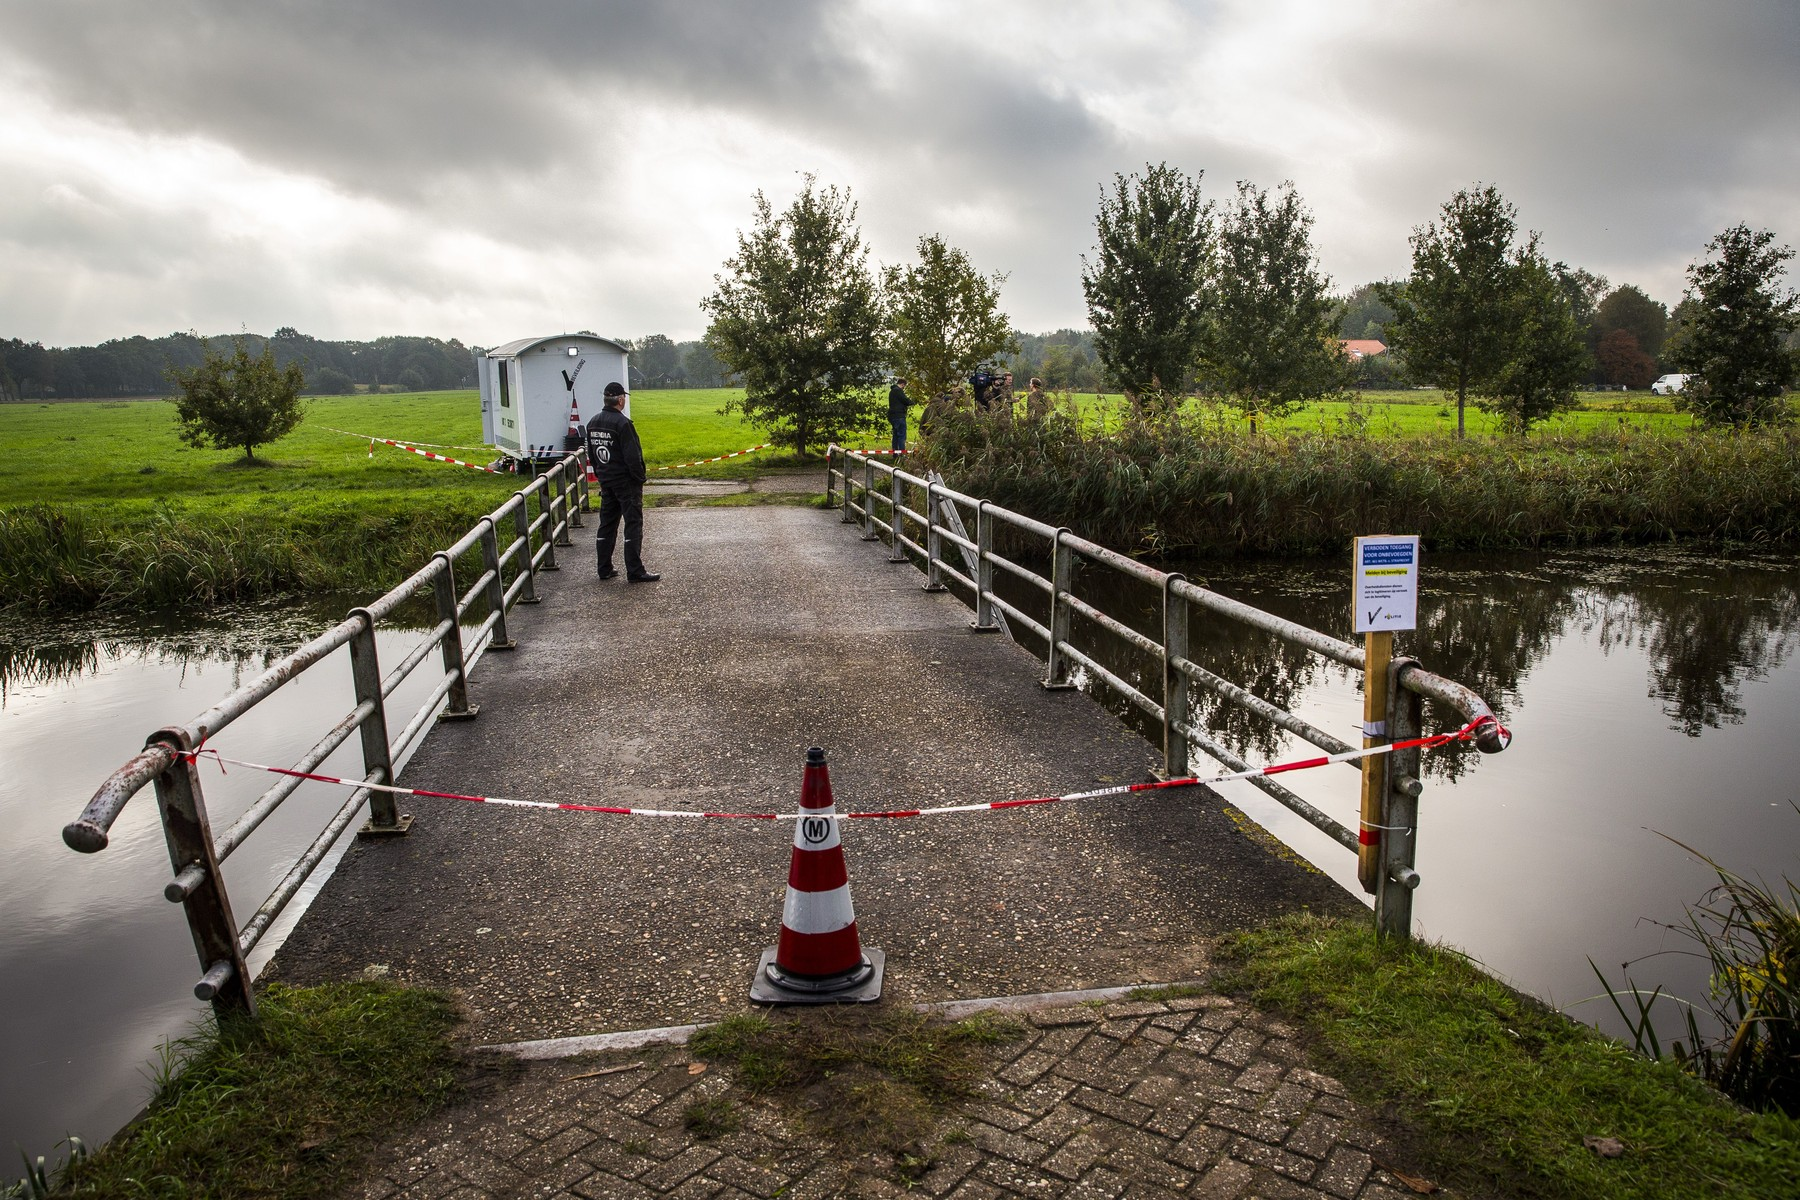 2019-10-16 13:05:11 Police are investigating a farm on the Buitenhuizerweg where a father and six children have been living in the basement for years, waiting for the end of time, 16 October 2019. ANP VINCENT JANNINK, Image: 477176254, License: Rights-managed, Restrictions: , Model Release: no, Credit line: VINCENT JANNINK / AFP / Profimedia